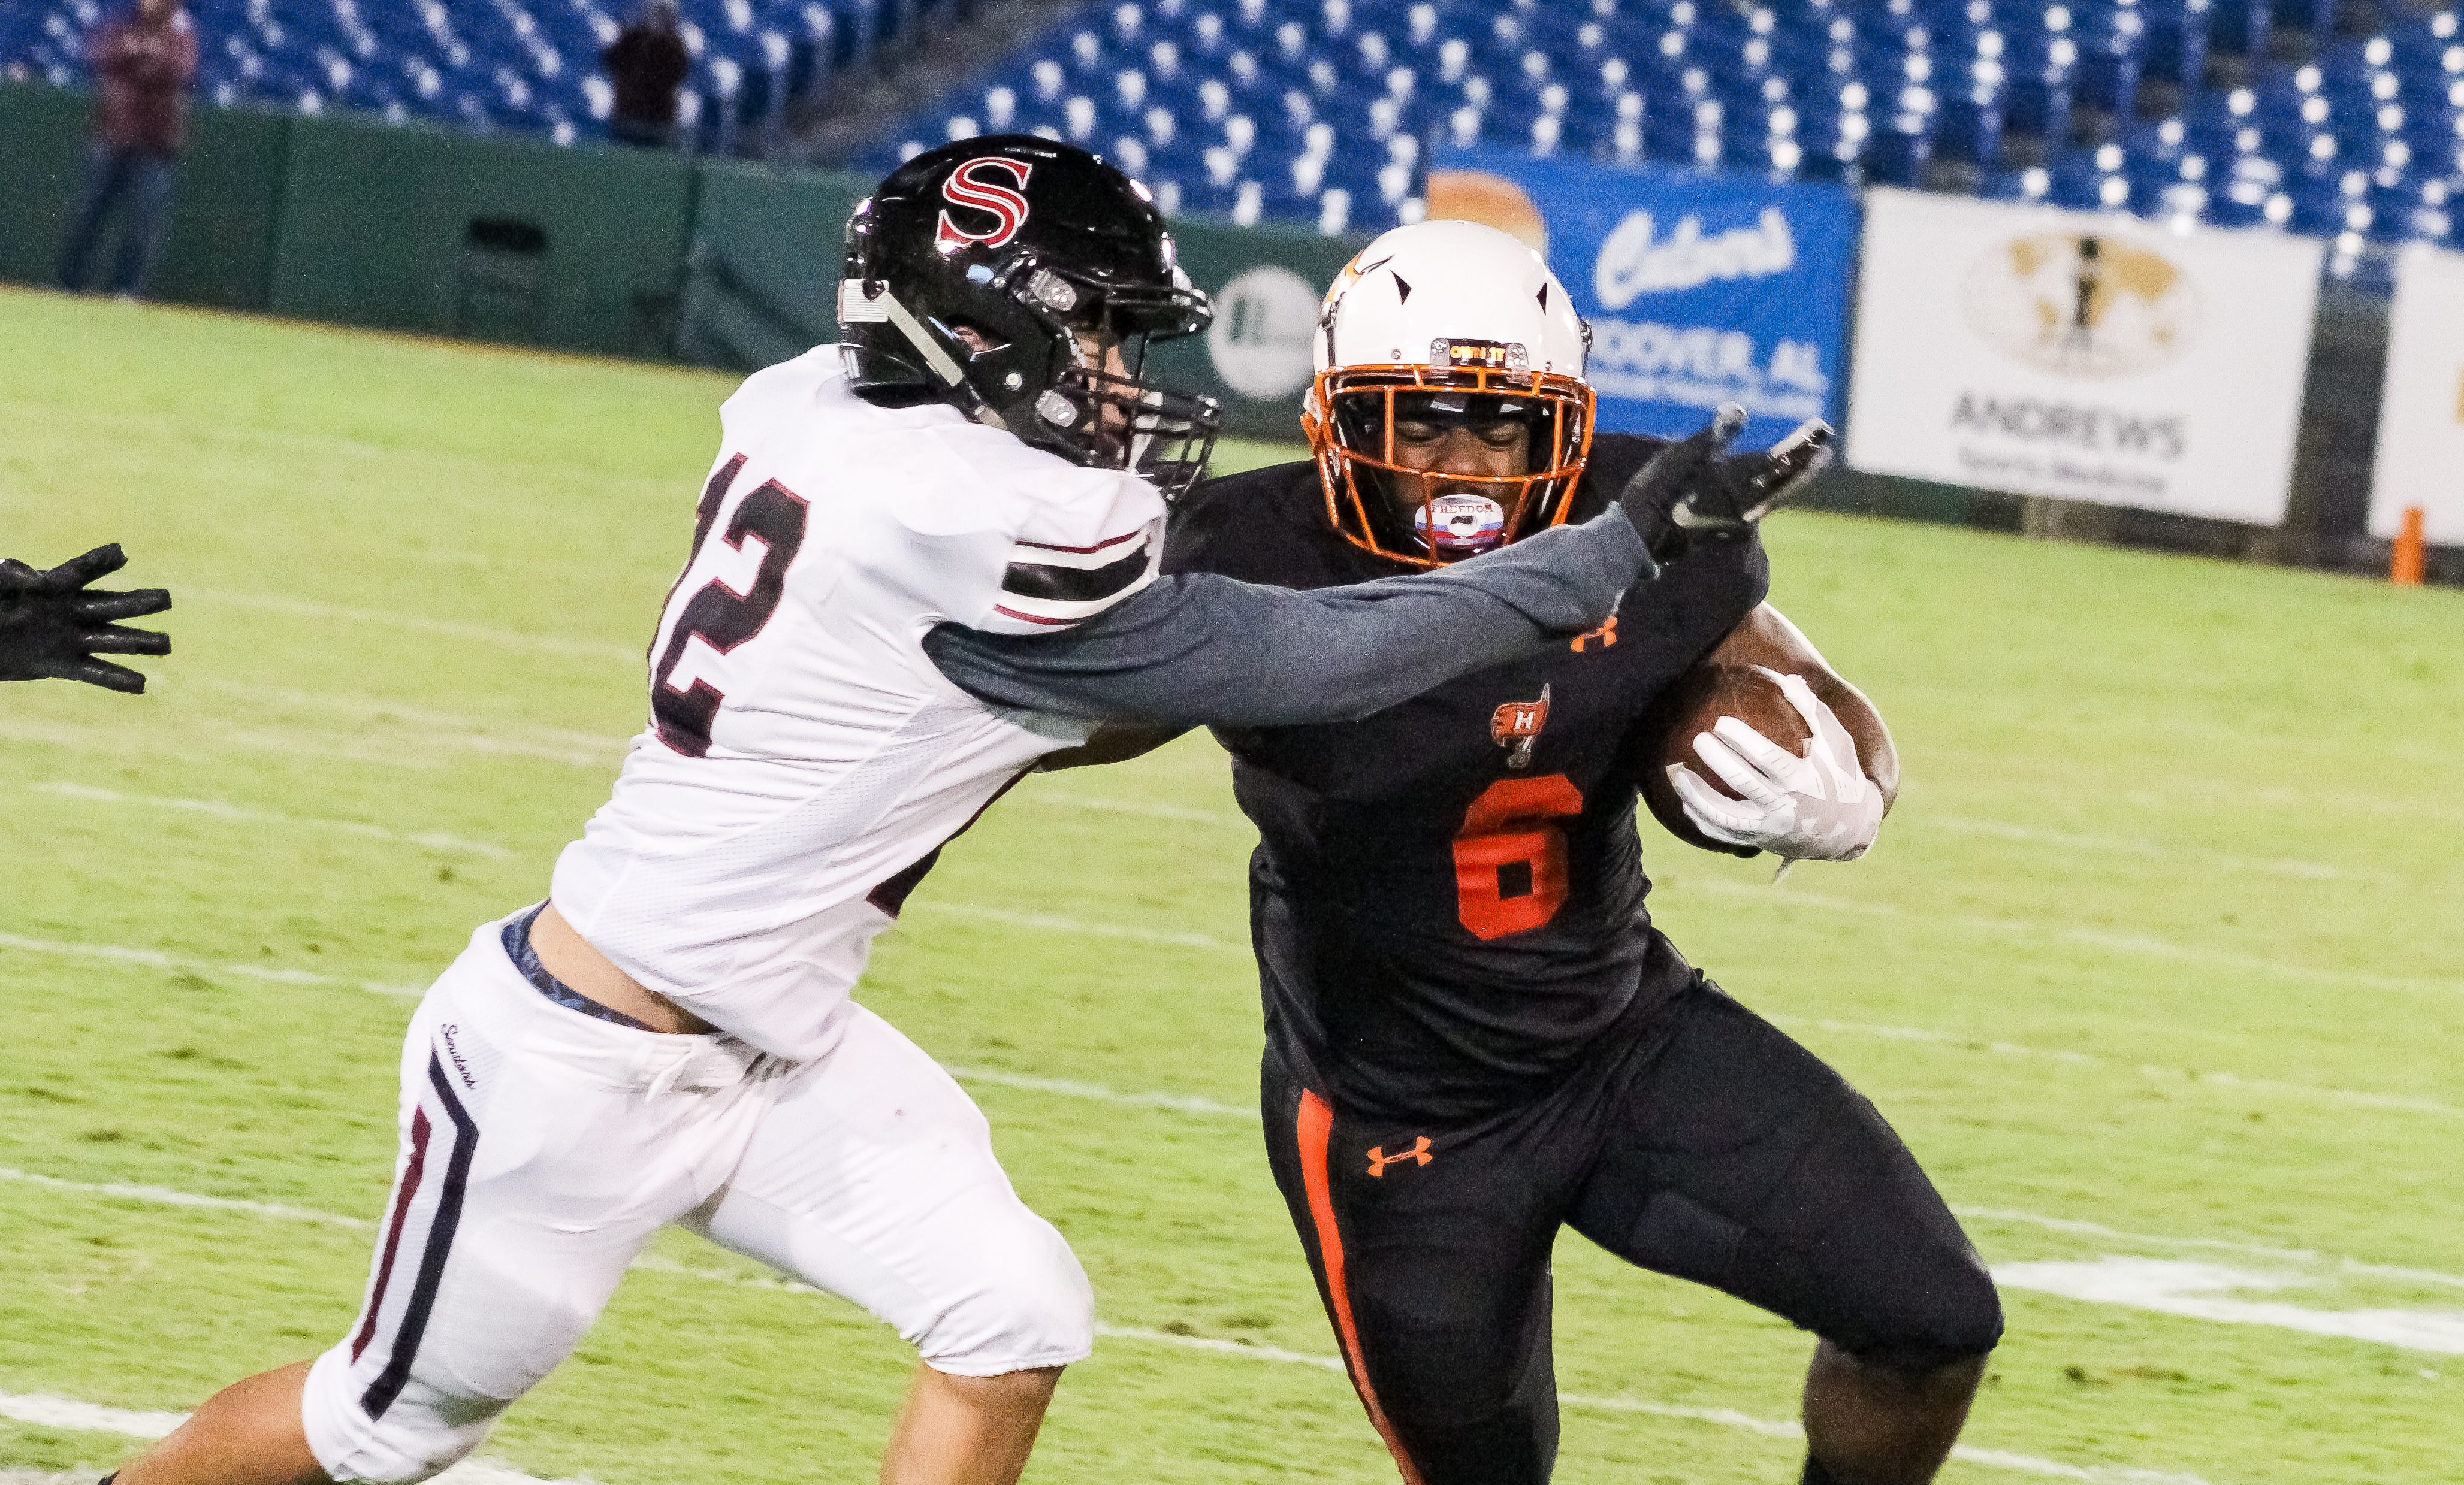 Hoover RB Anthony Hayes